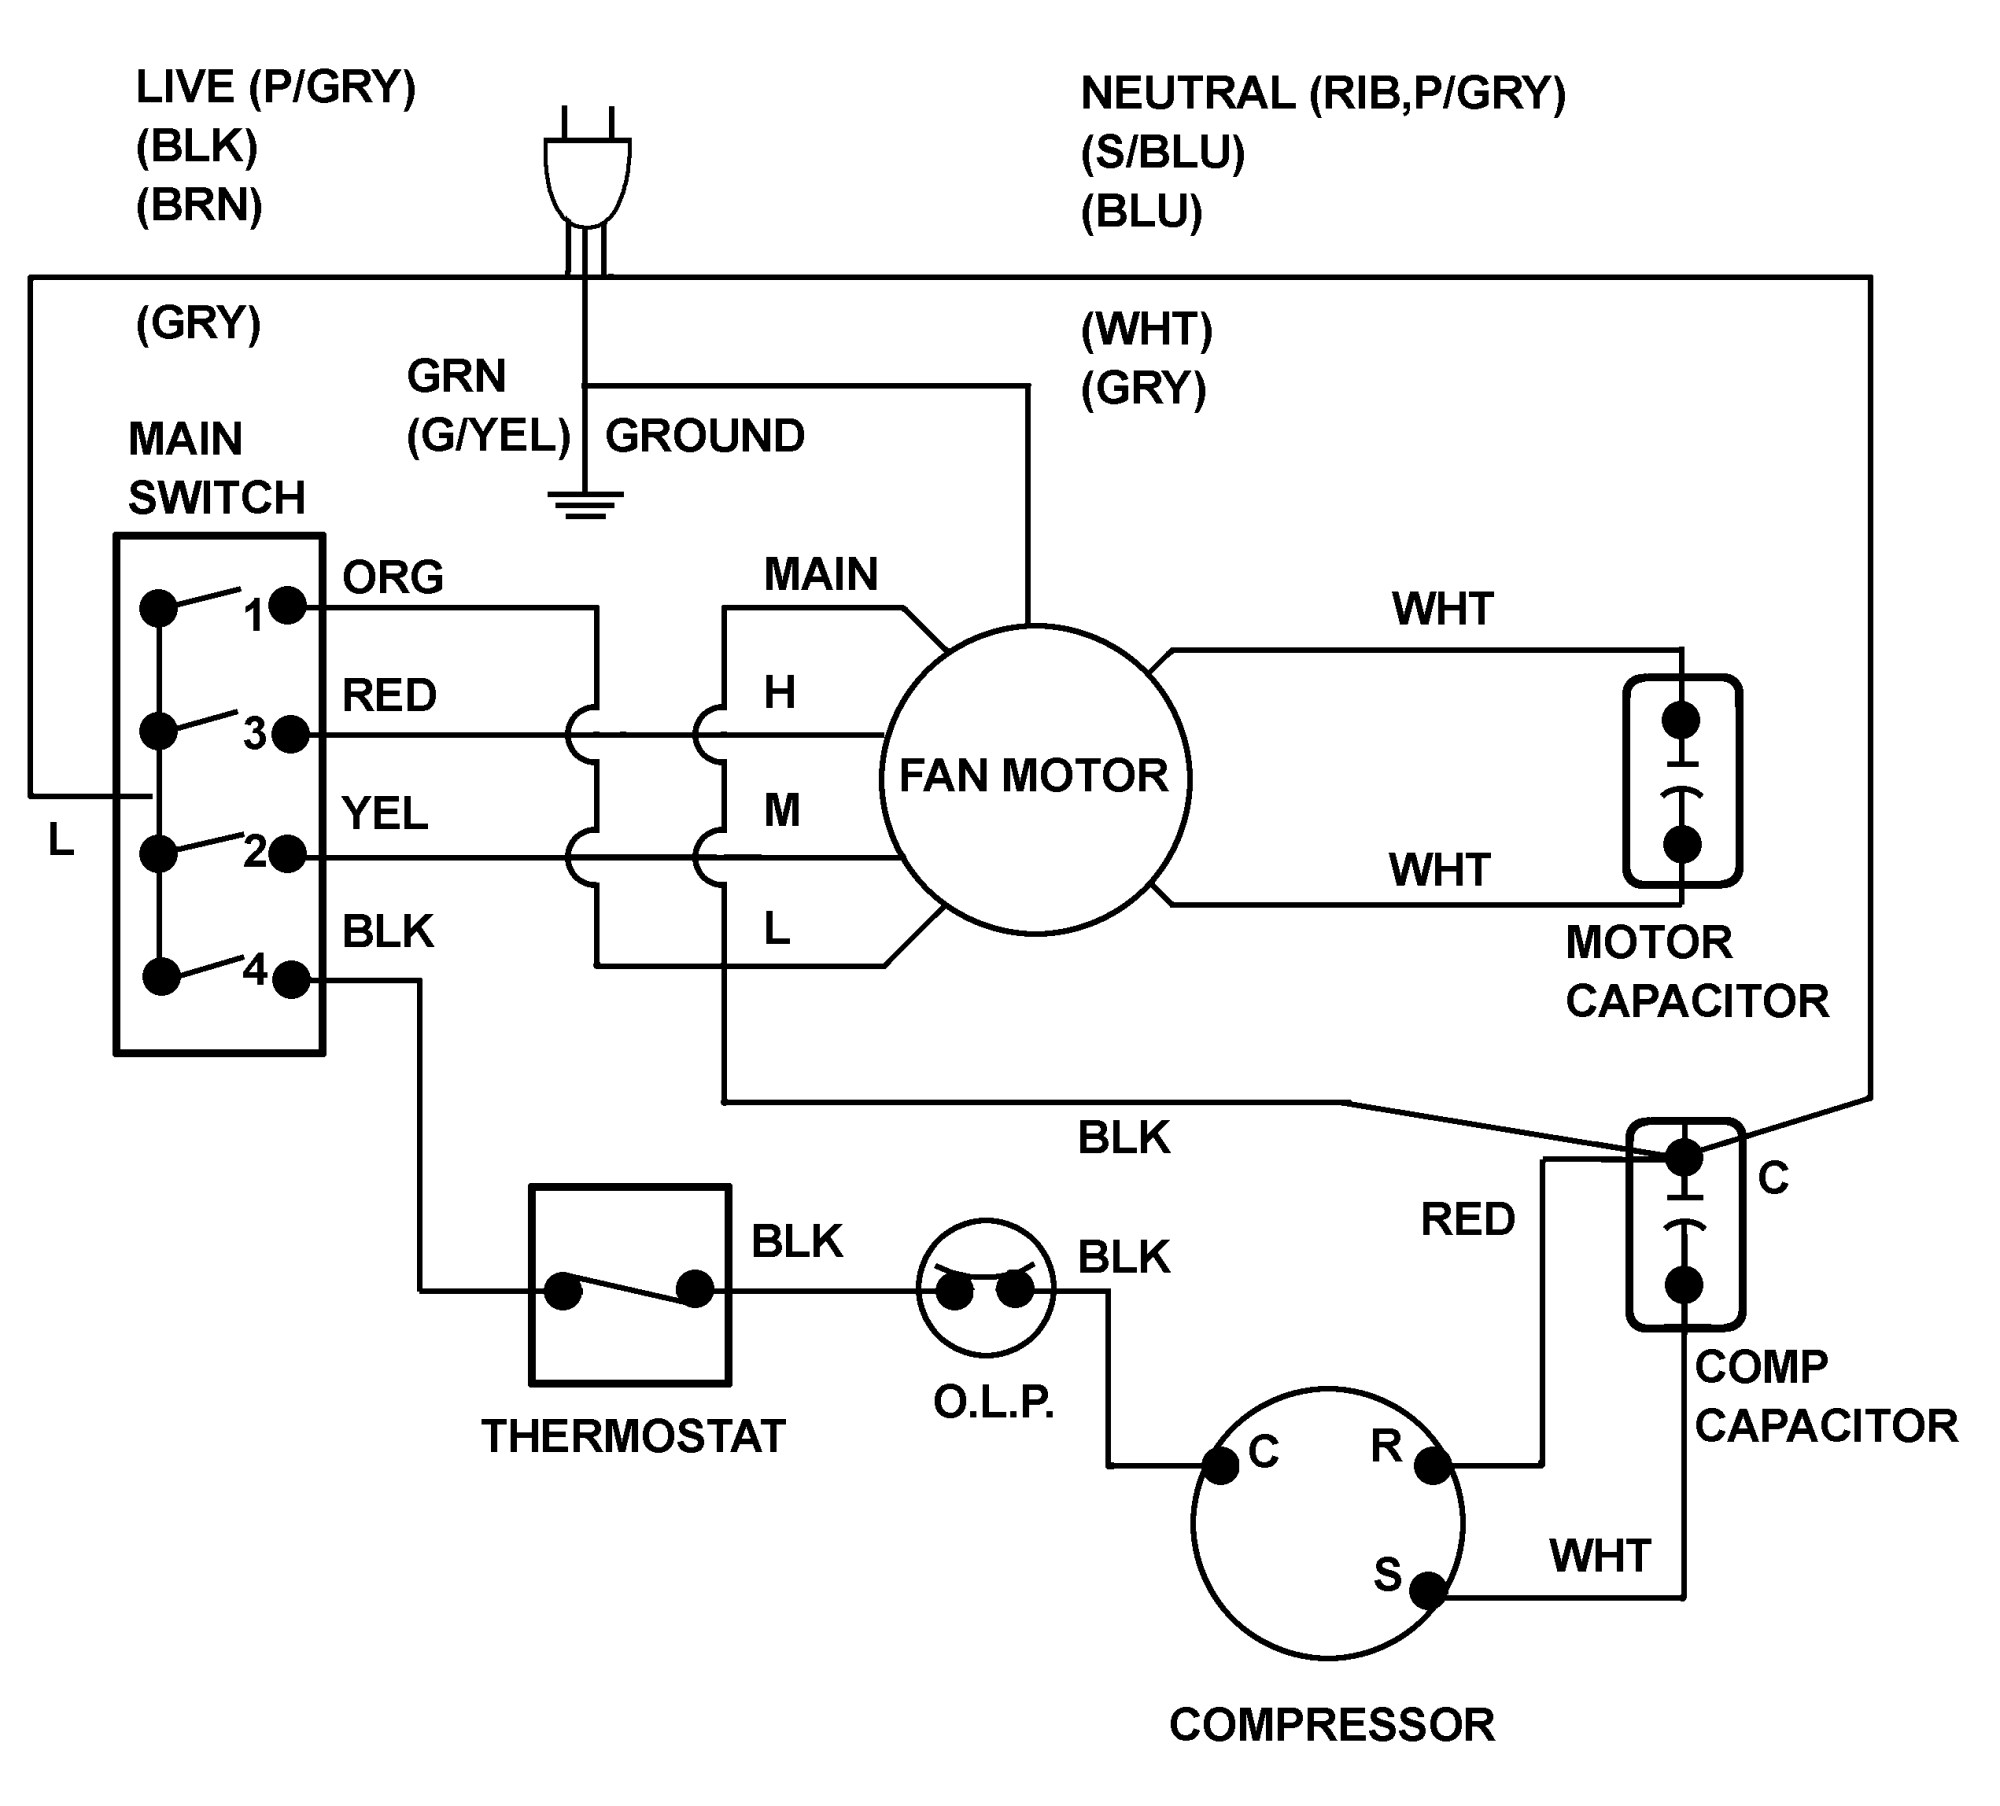 hight resolution of hvac control wiring most basic system wiring diagram show hvac control wiring most basic system